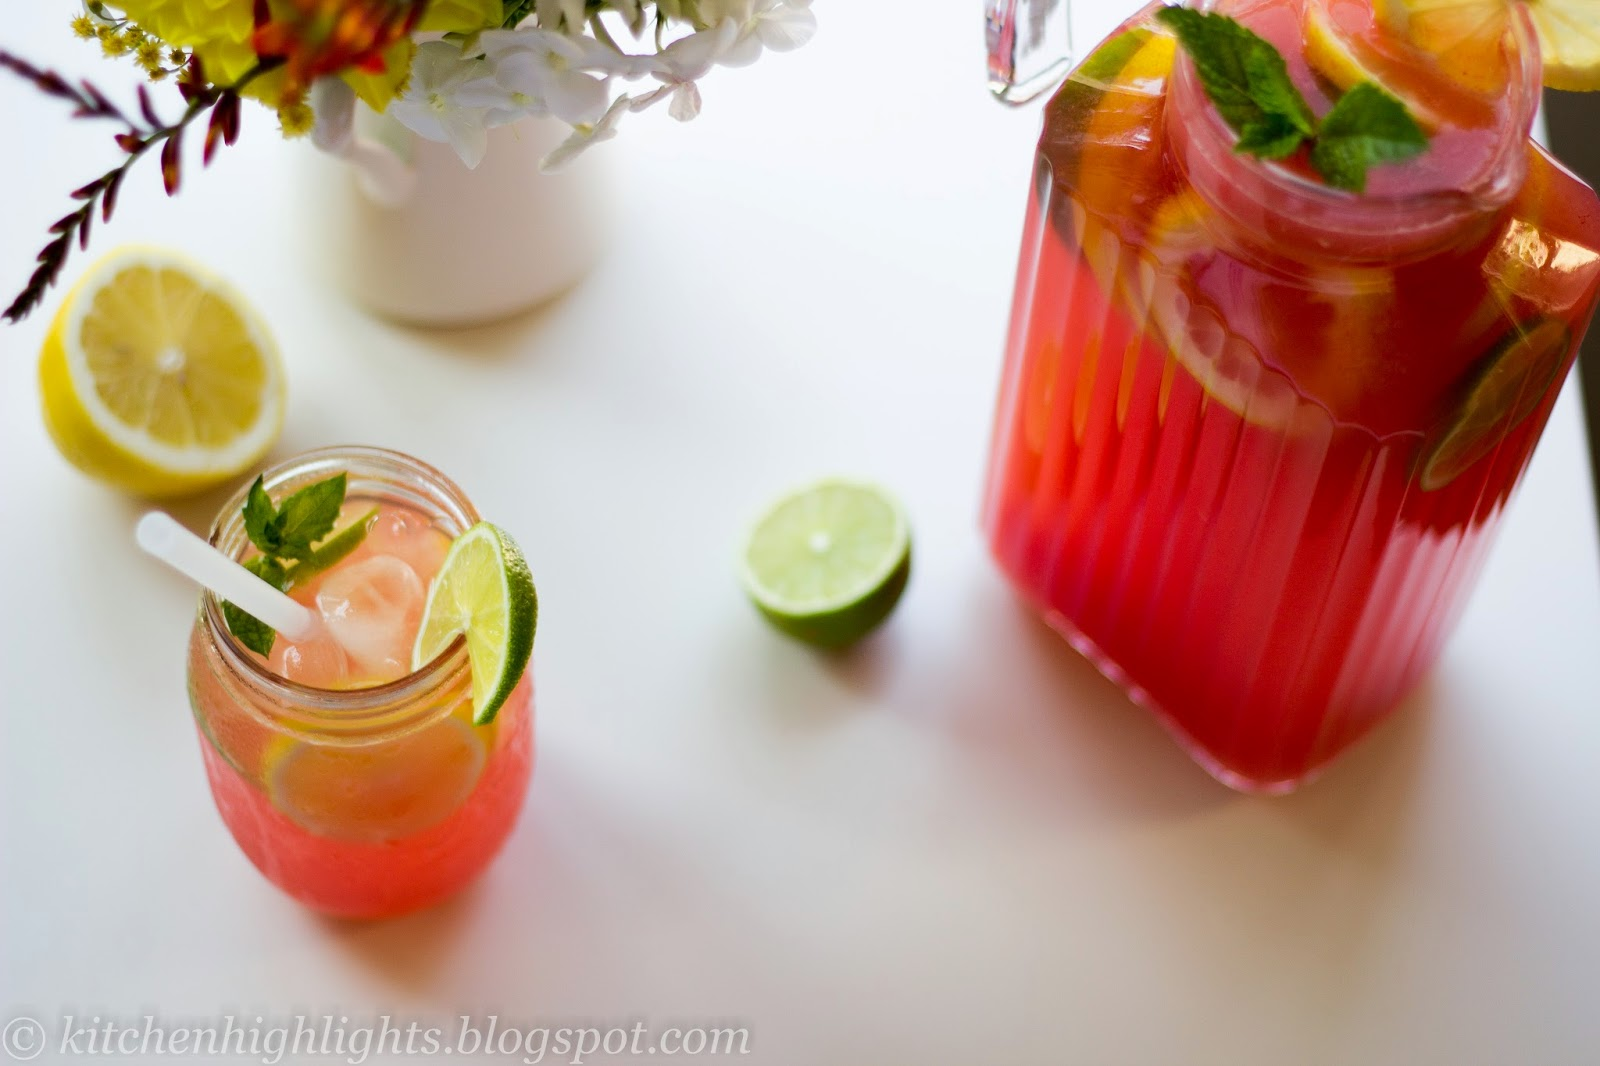 Watermelon lemonade is an all-natural vibrant summer drink with a perfect balance between sweet and tart and with a subtle flavor of mint